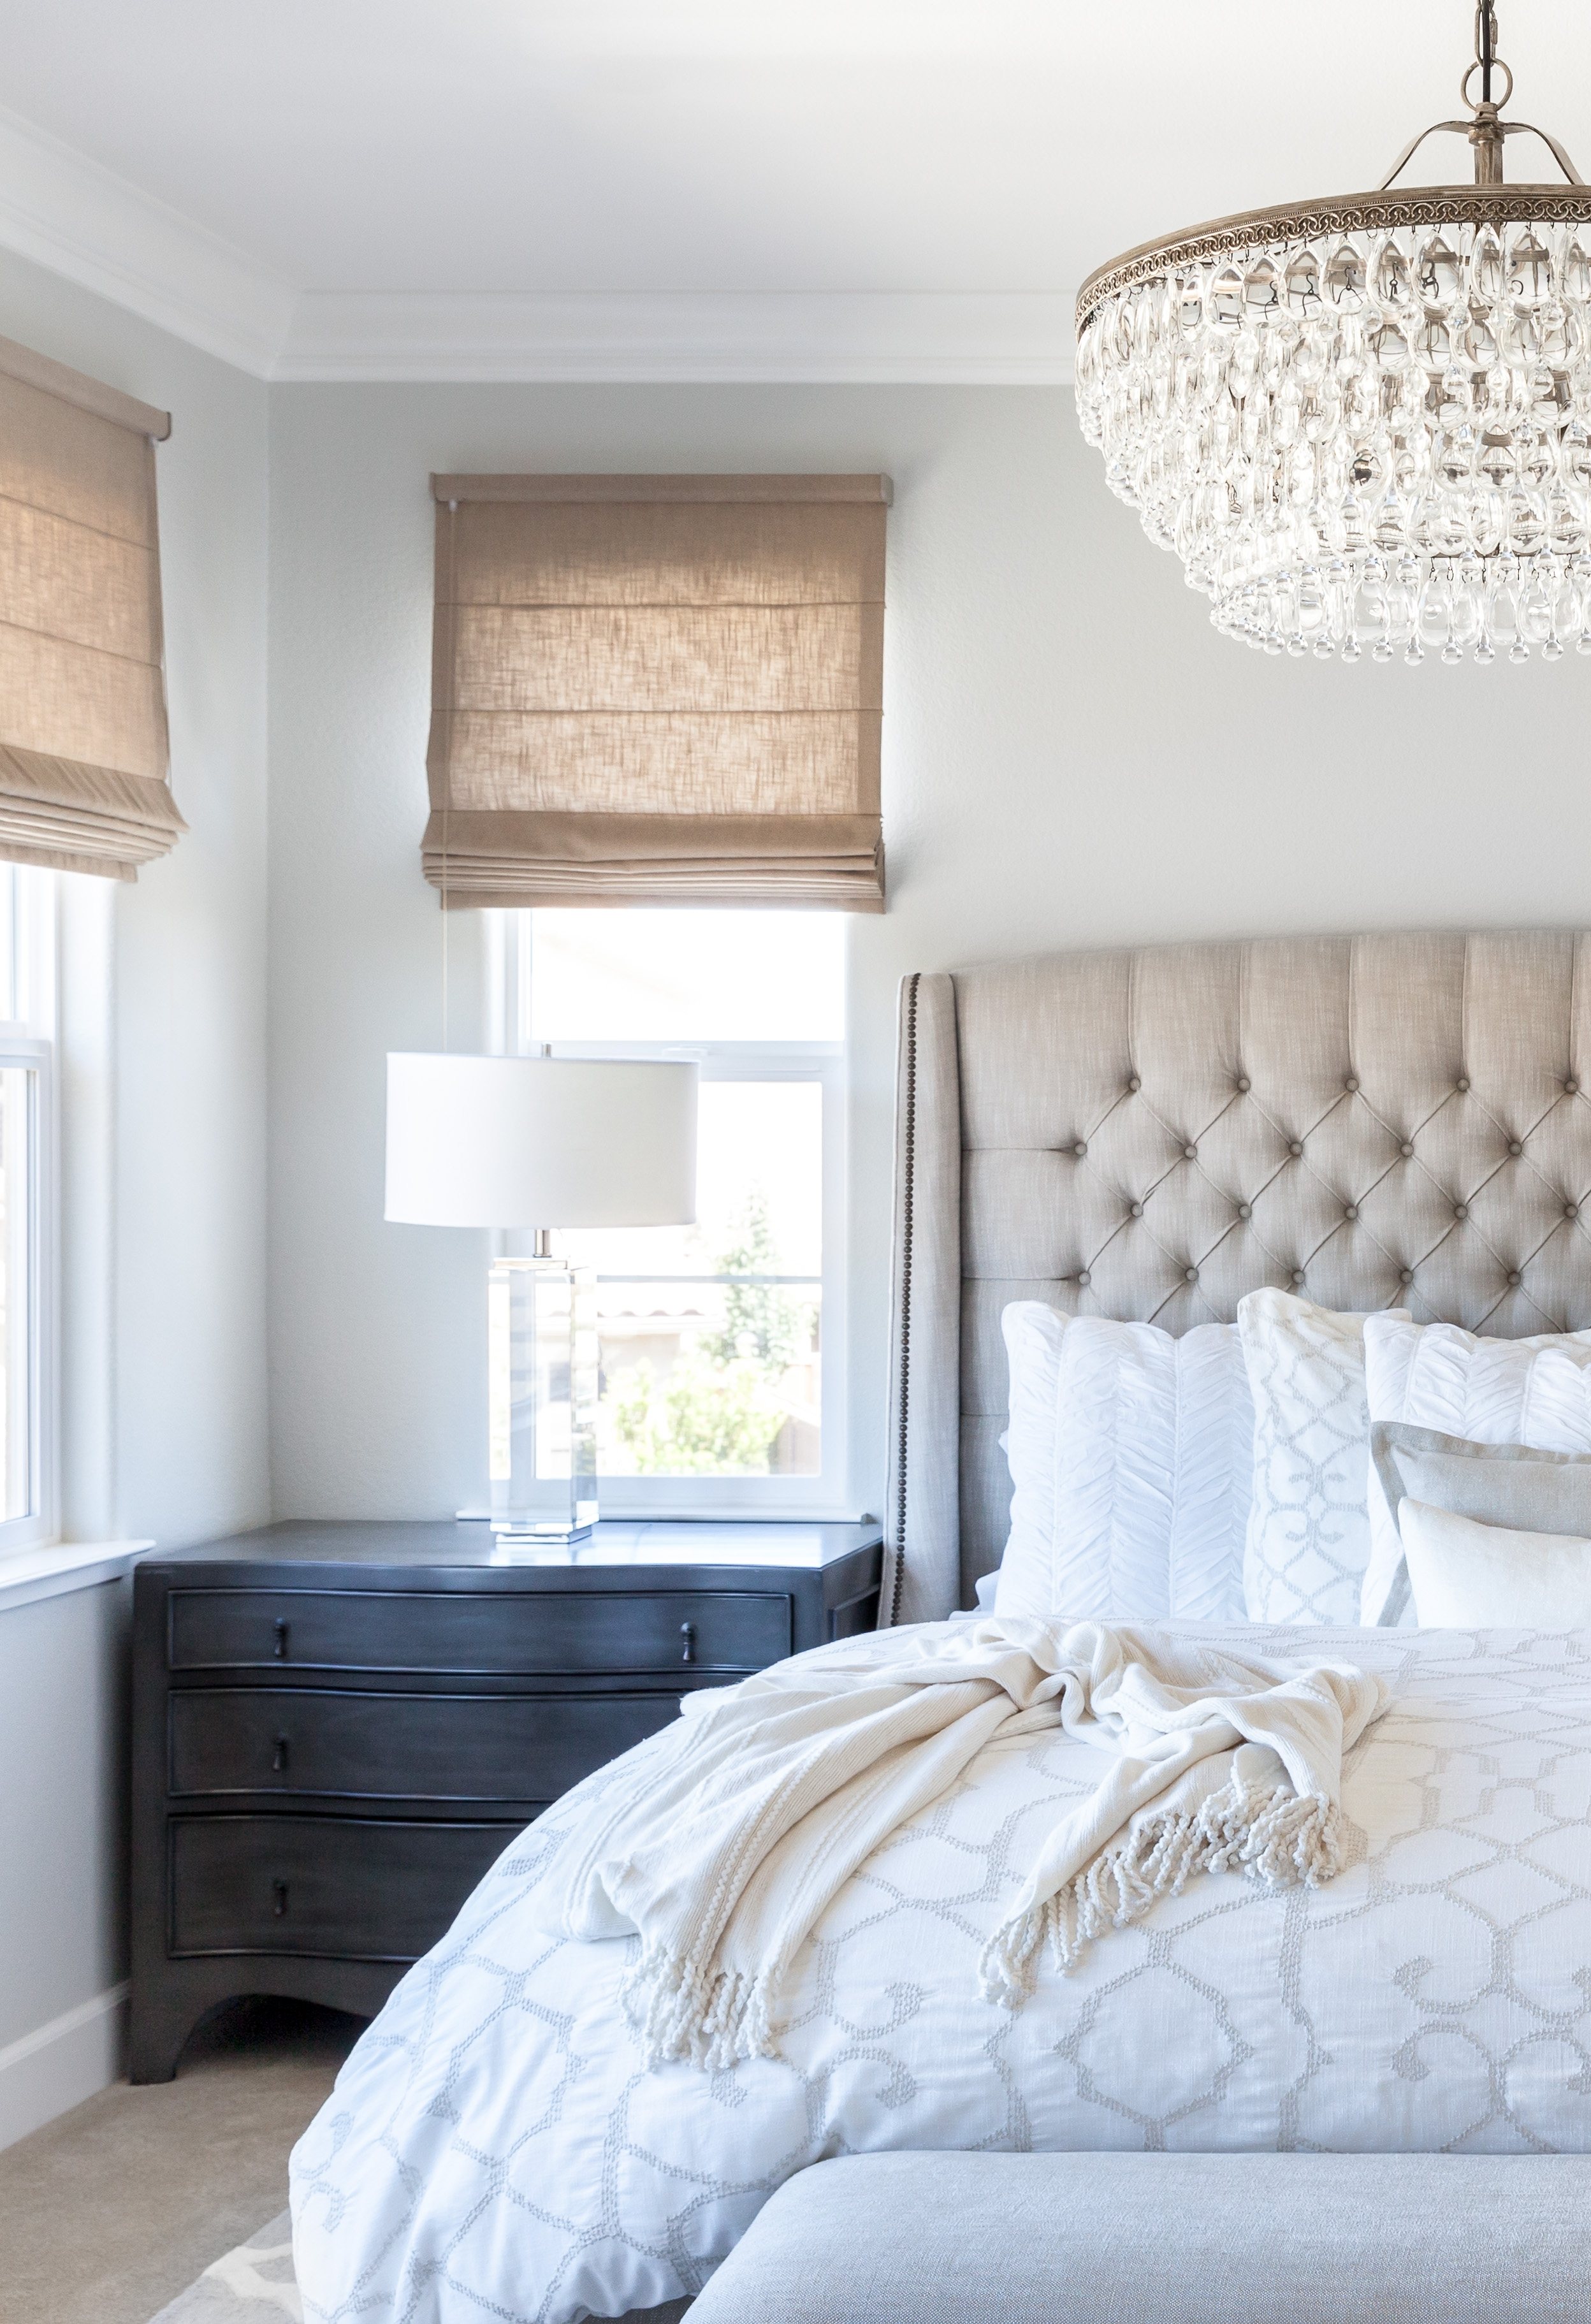 Best And Newest Bedroom Lamps For Nightstands – Houzz Design Ideas – Rogersville Intended For Chandelier Night Stand Lamps (View 4 of 20)